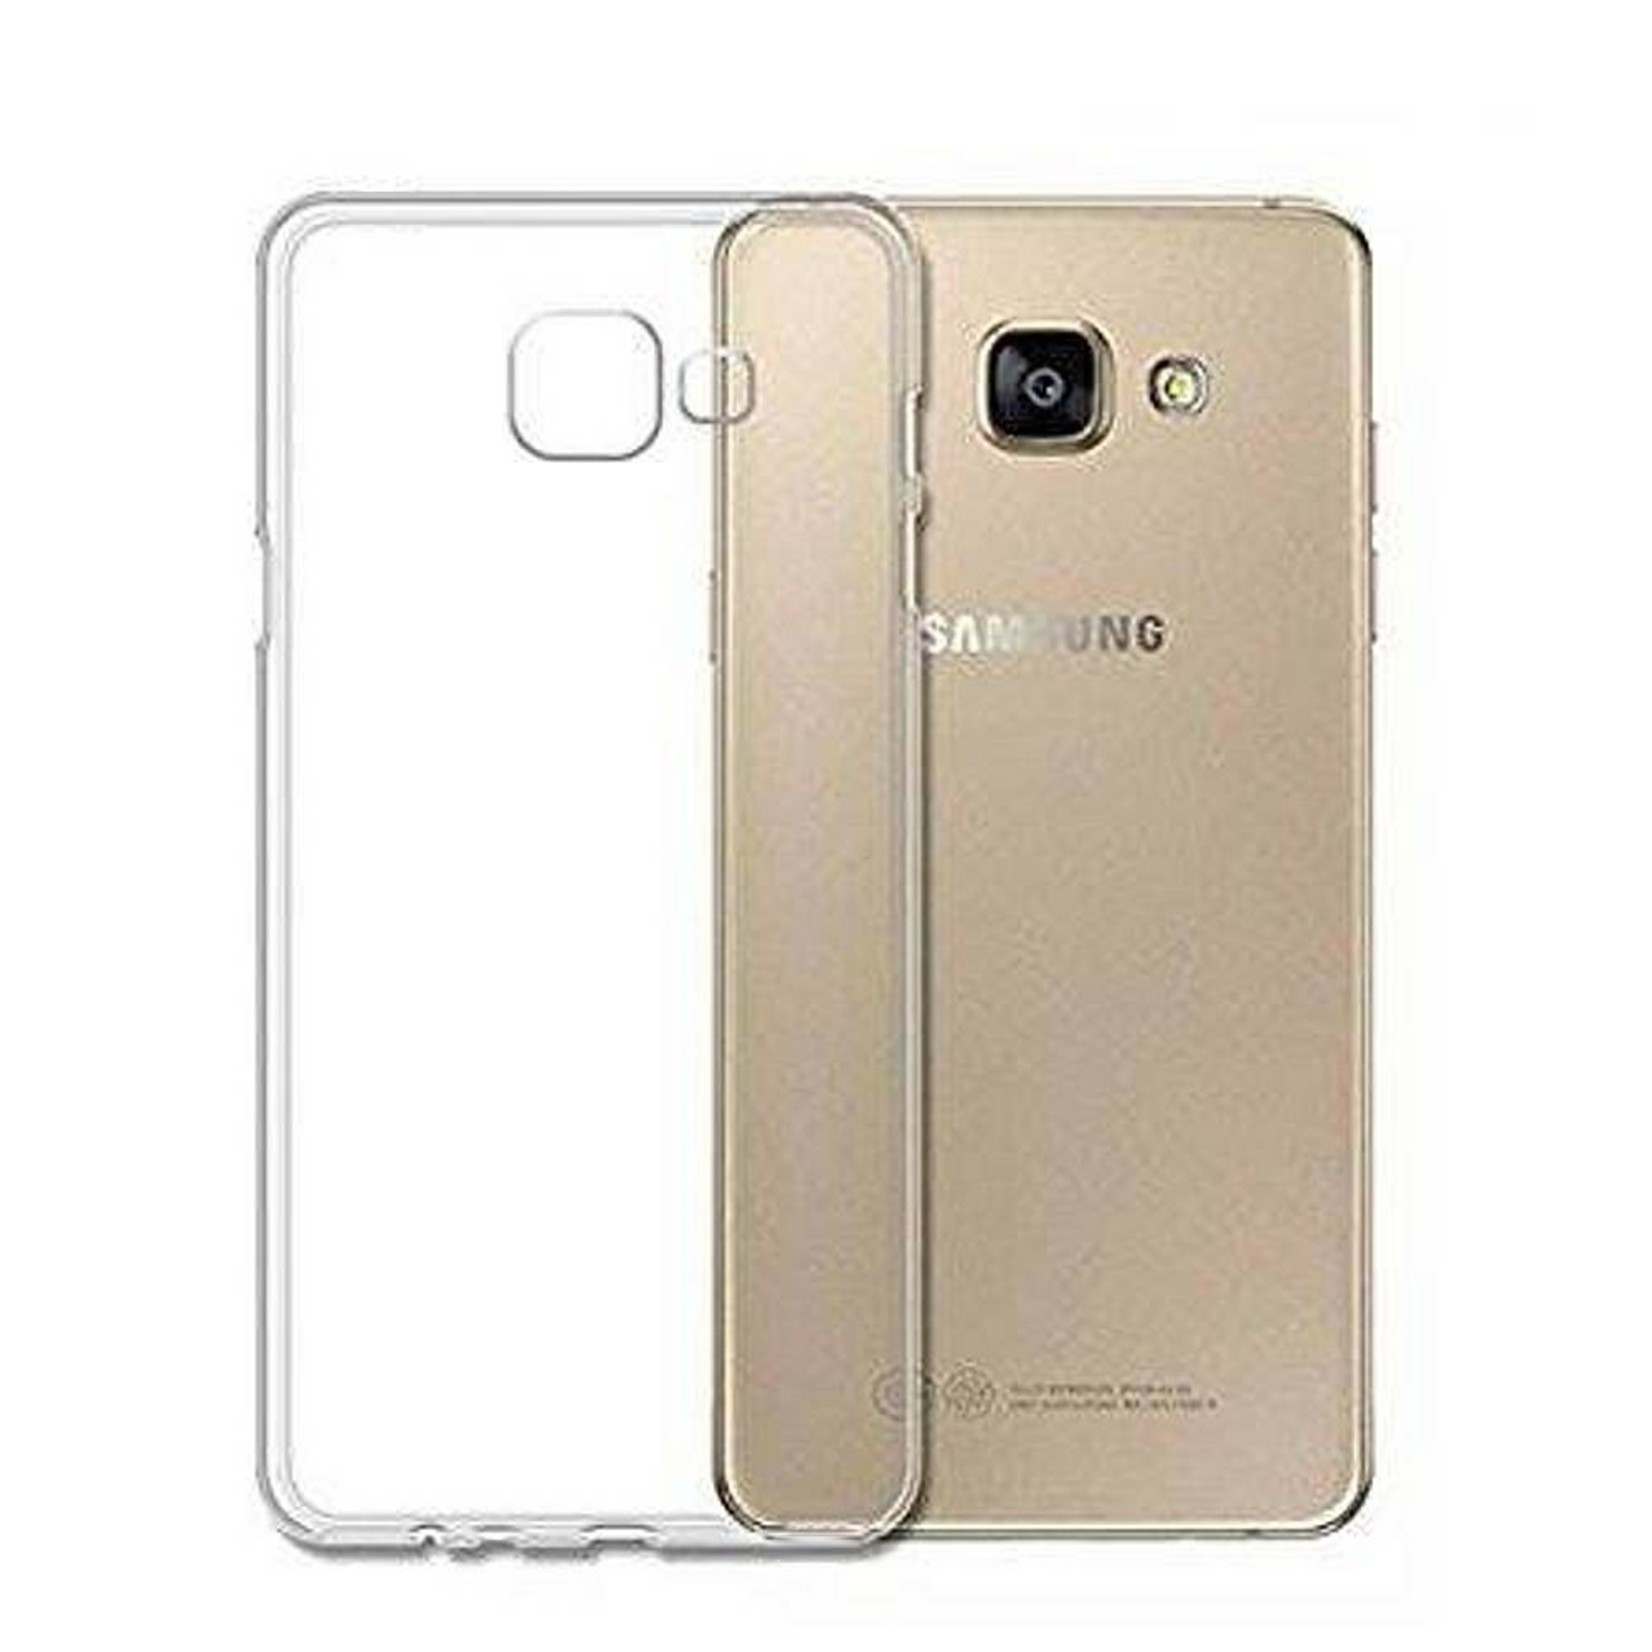 Colorfone Hoesje CoolSkin3T voor Samsung J7 Max Transparant Wit